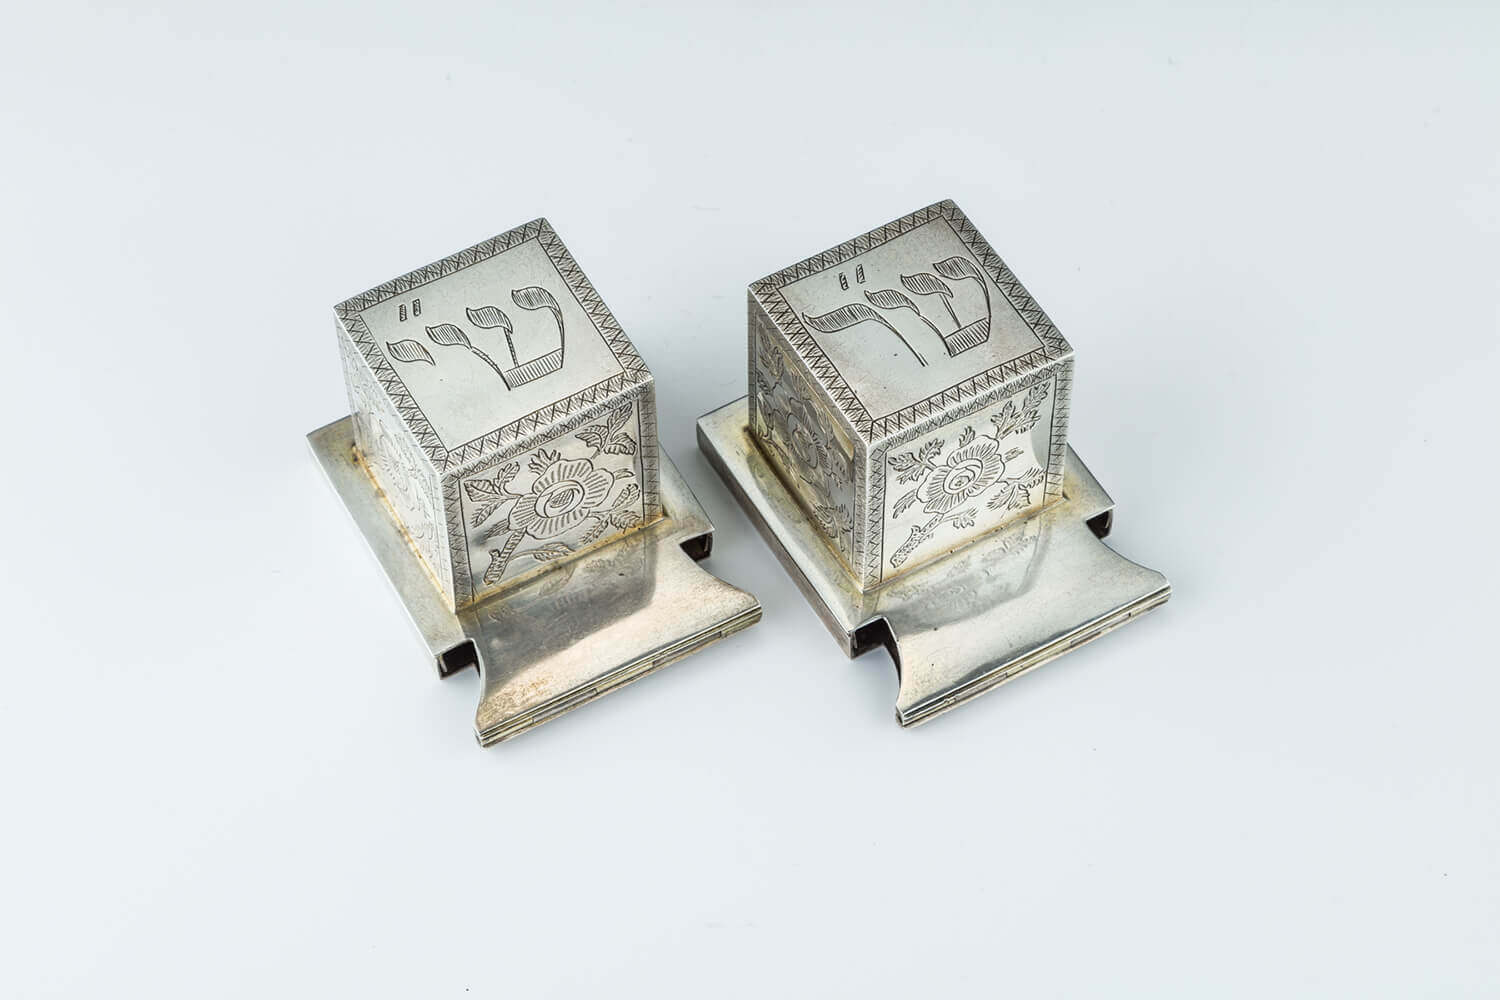 096. A LARGE PAIR OF SILVER TEFILLIN CASES